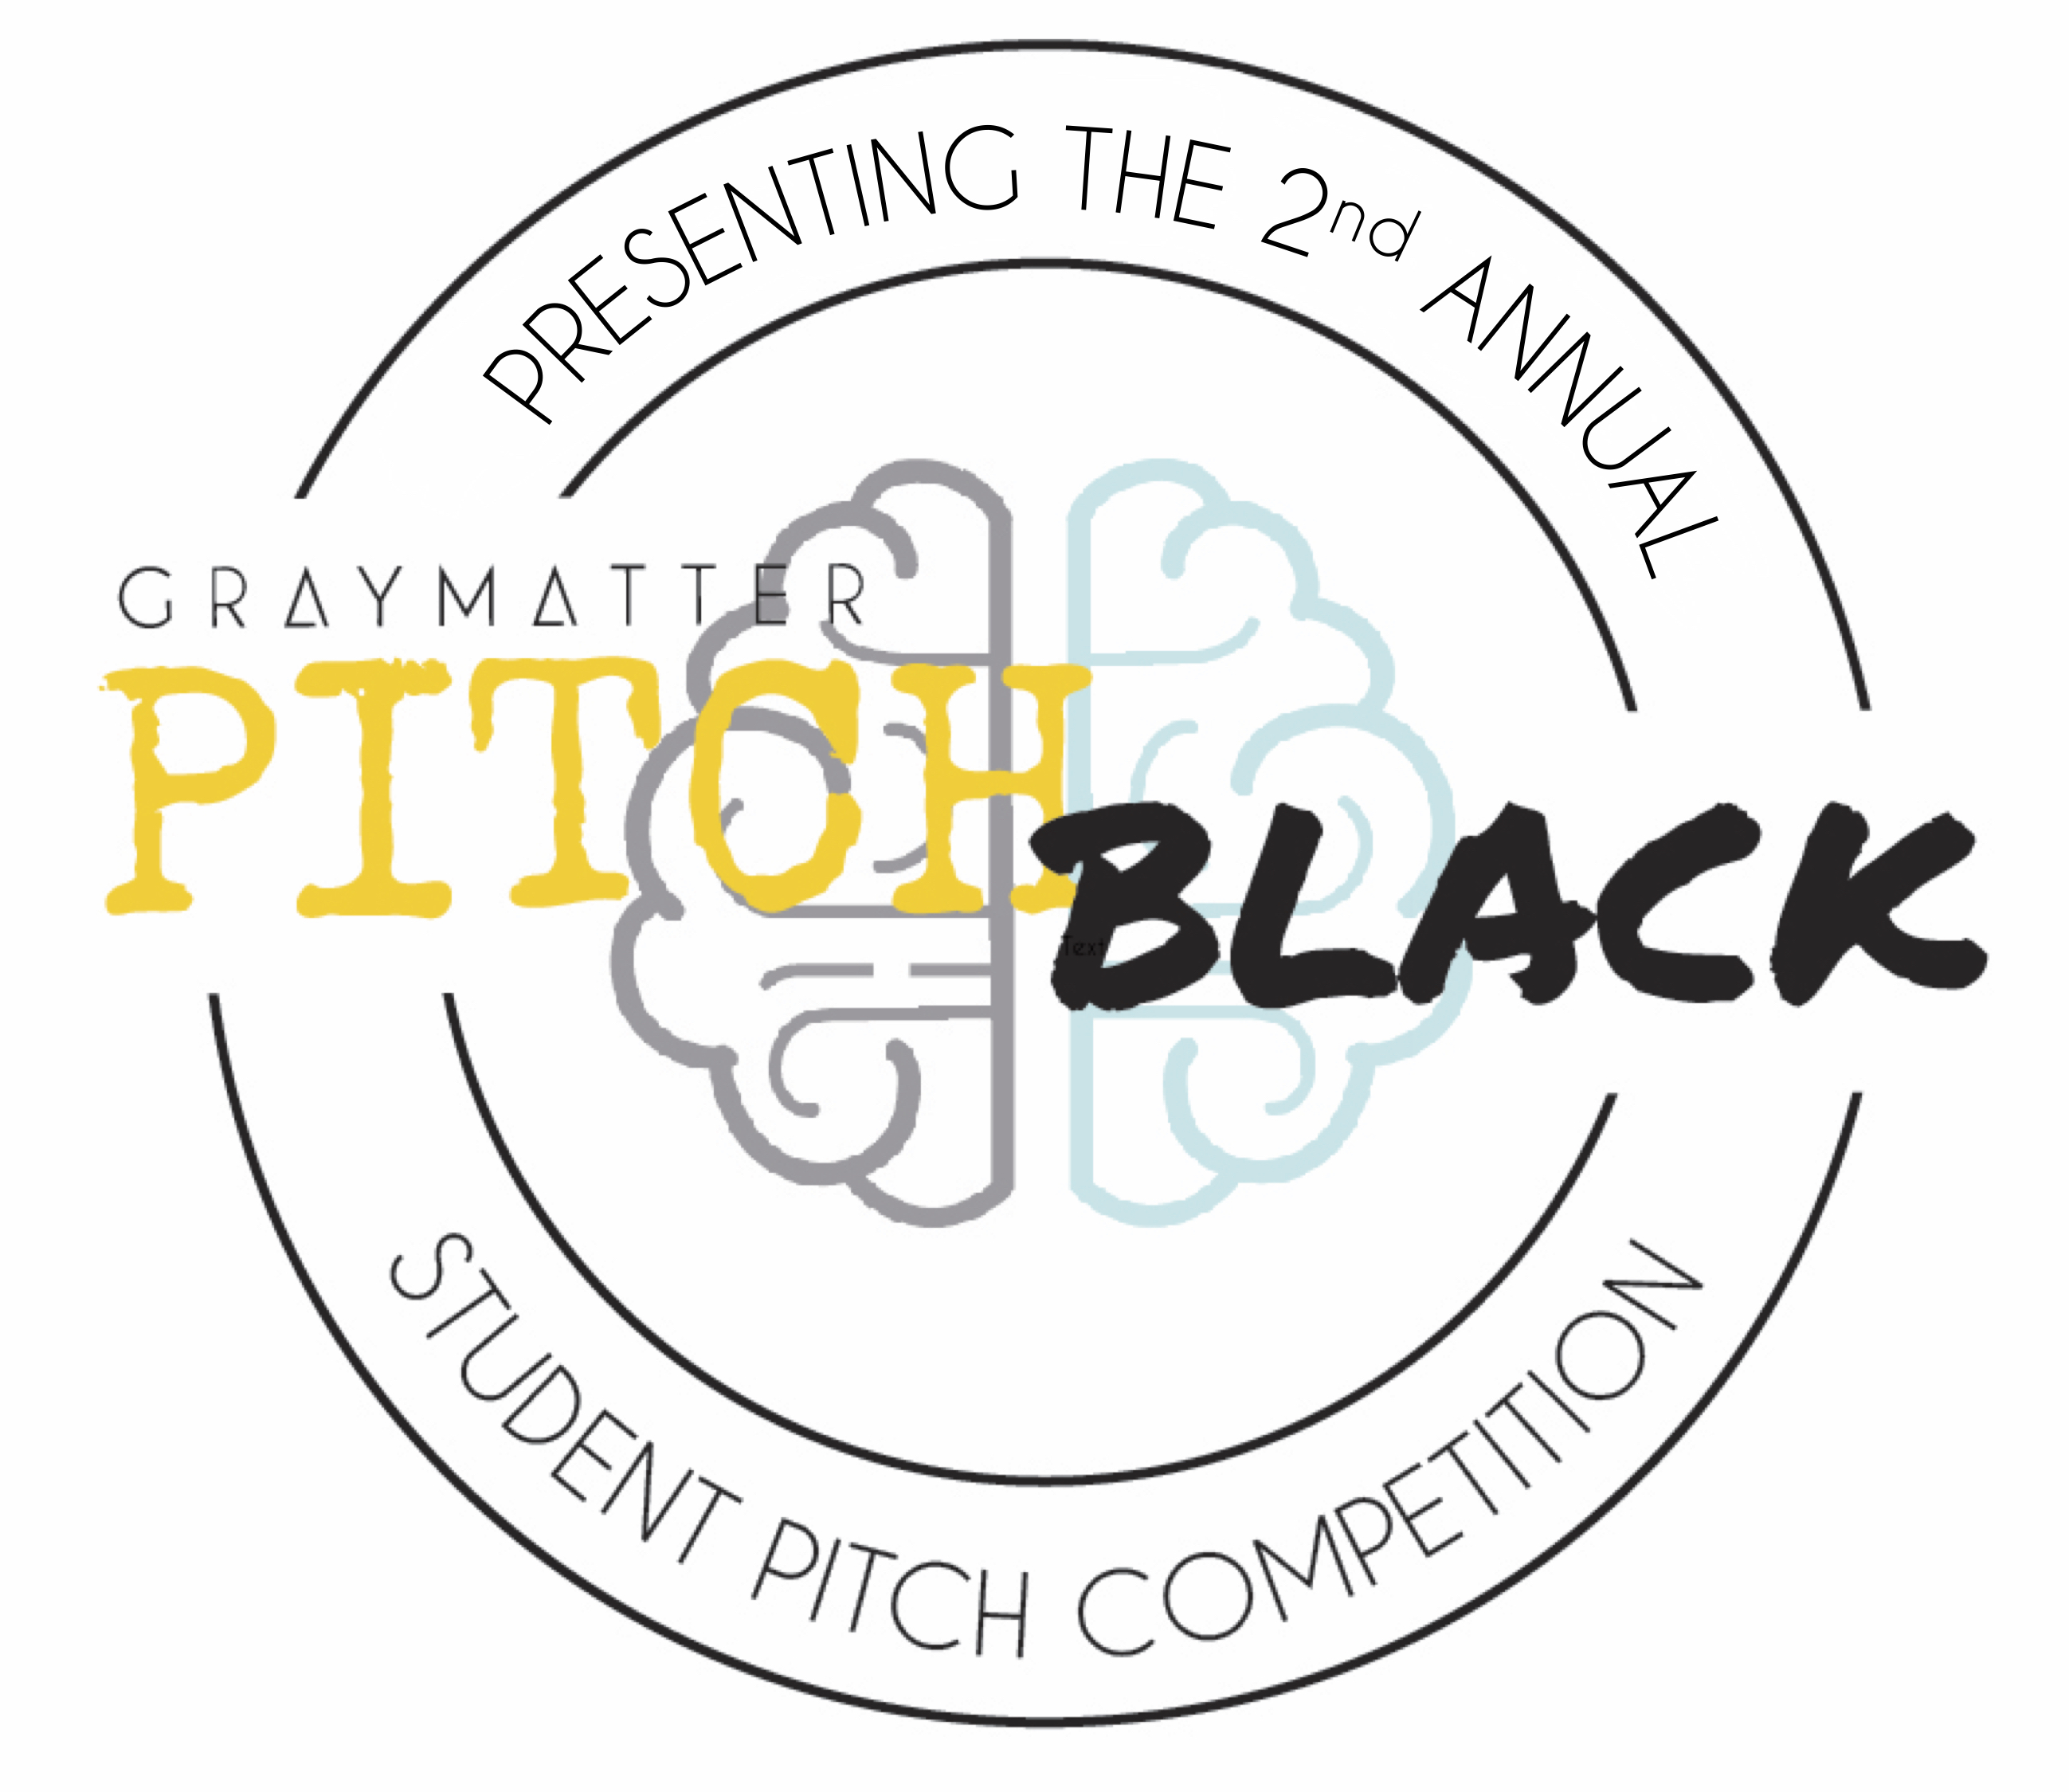 The Gray Matter Experience Second Annual Black Student Pitch Competition